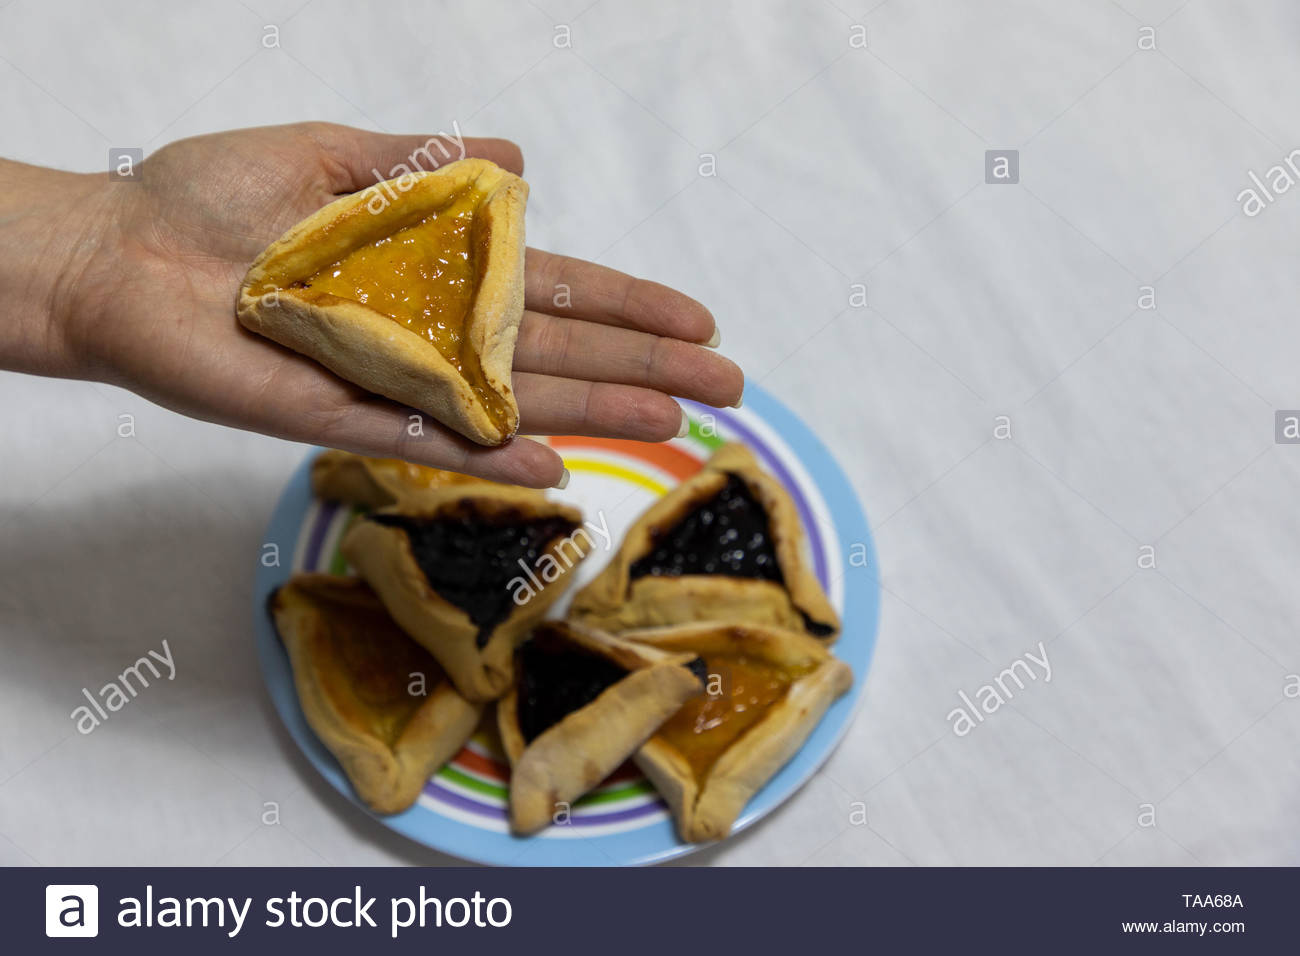 Woman hand holding hamantash cookie on top of colorful plate with more hamantash cookies - Stock Image